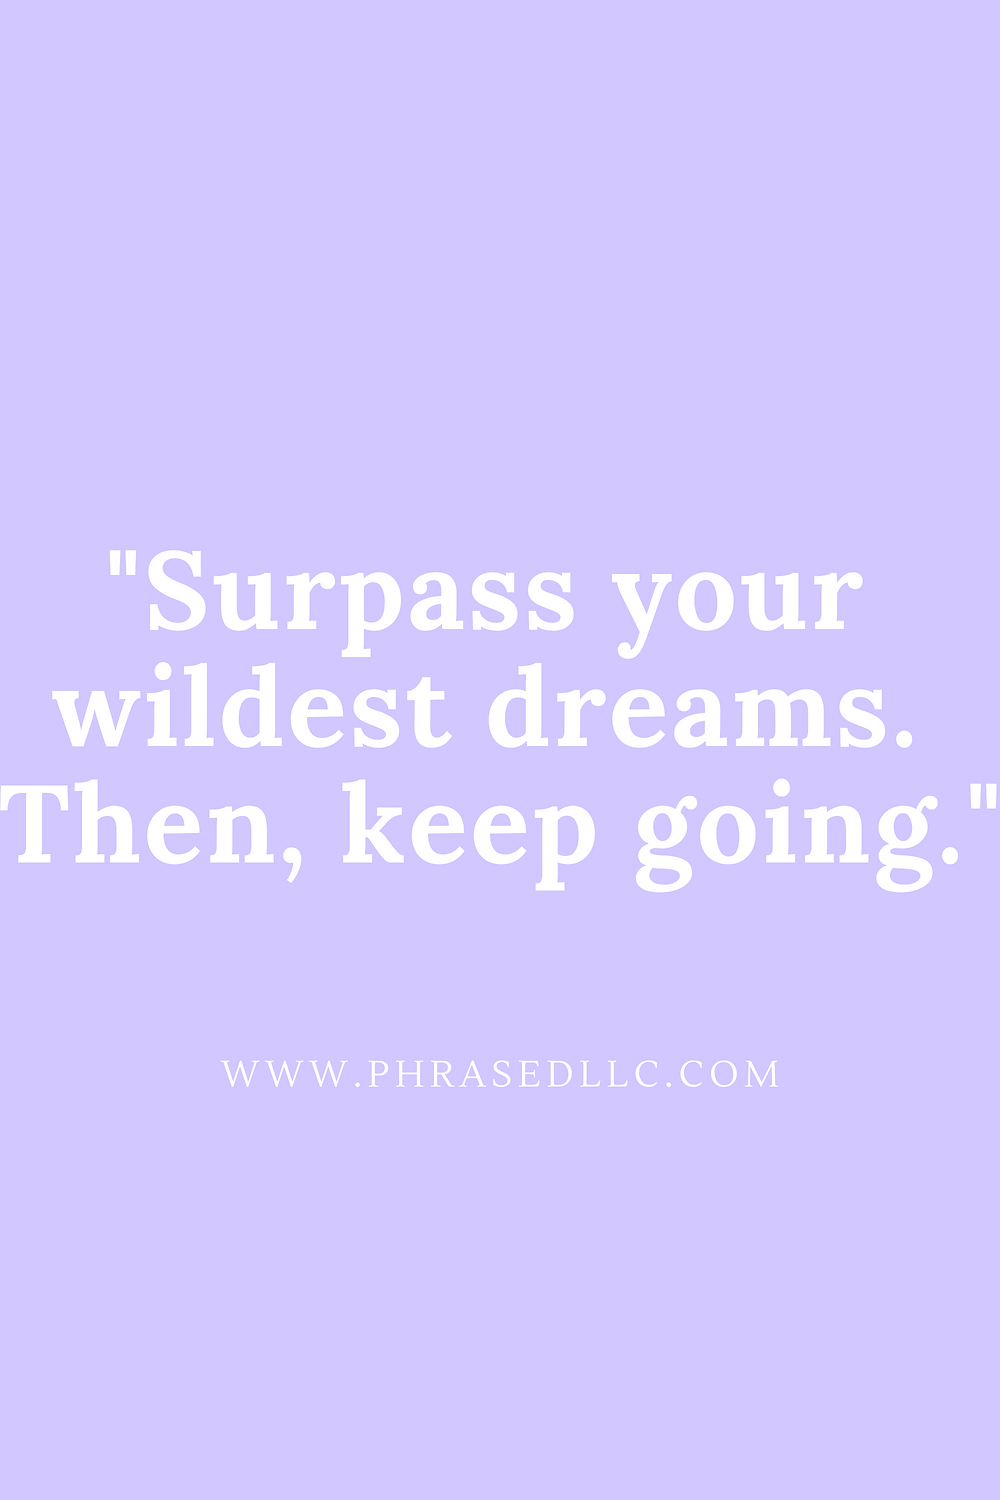 Your wildest dreams are waiting to be accomplished. Use this short inspirational quote as motivation to surpass them.